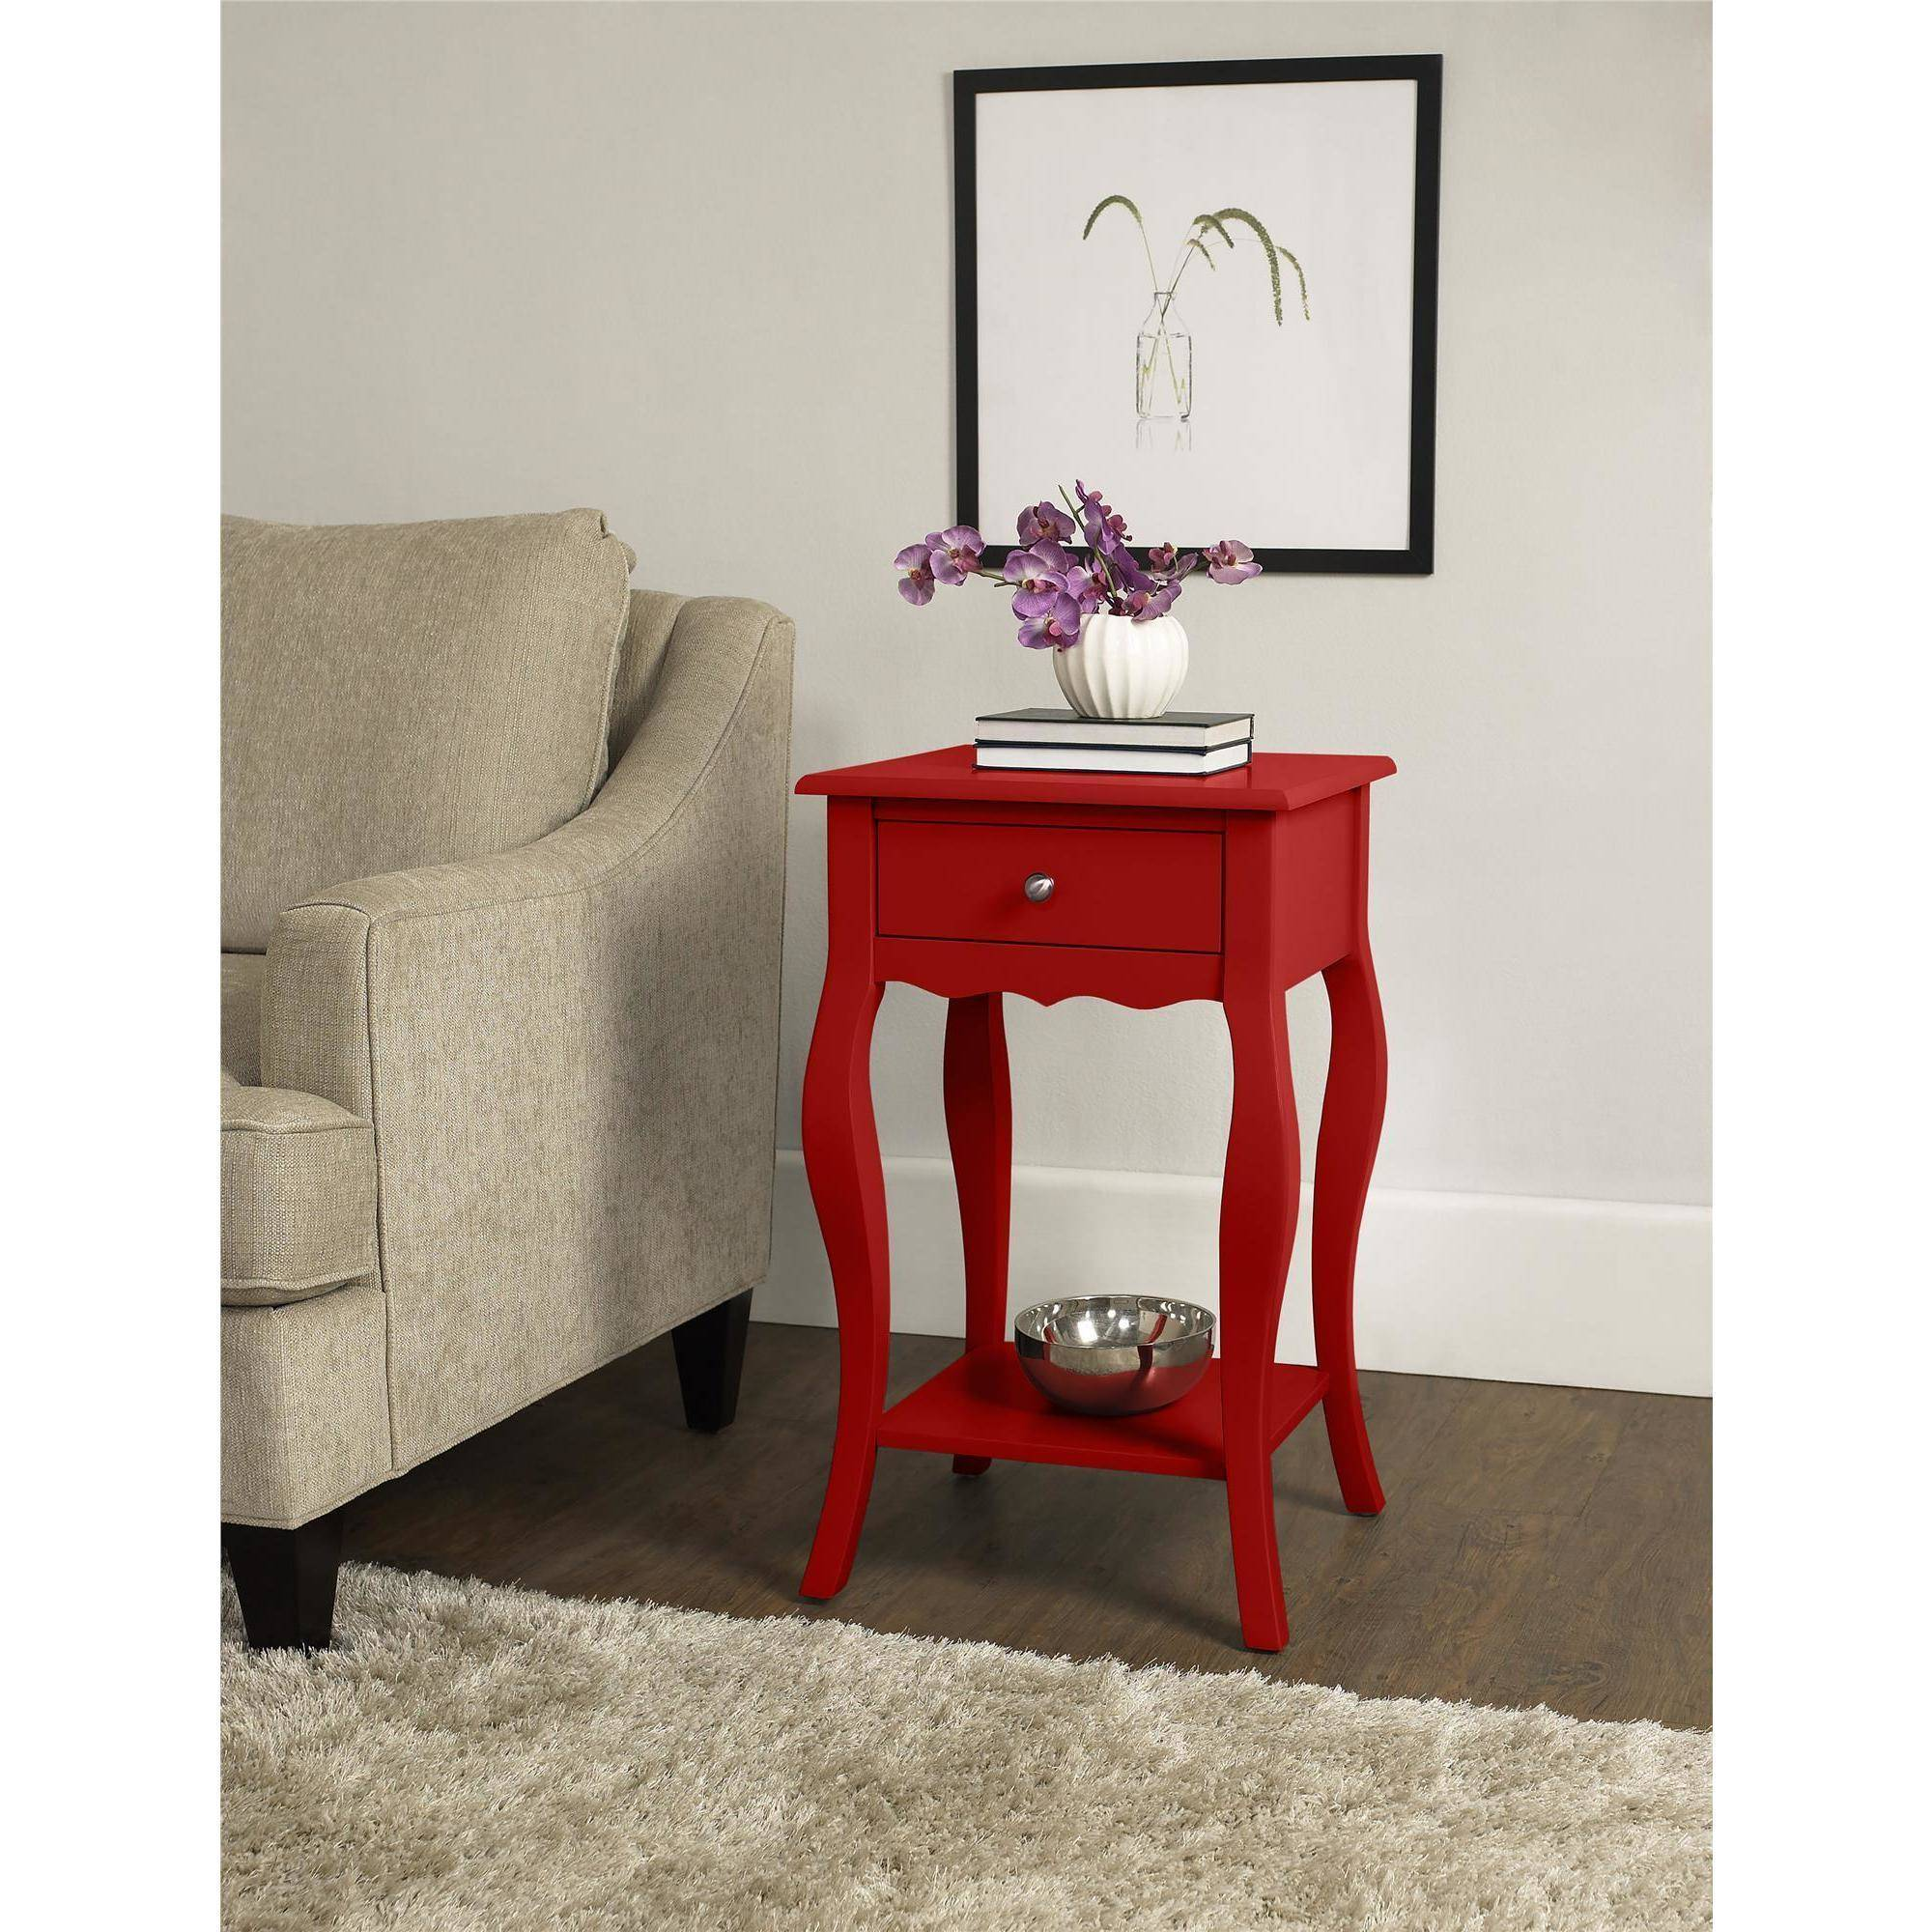 ameriwood home kennedy accent table red small next lamps nautical outdoor lighting sconces wood for furniture plexiglass cube ceramic lamp garden sets threshold windham buffet